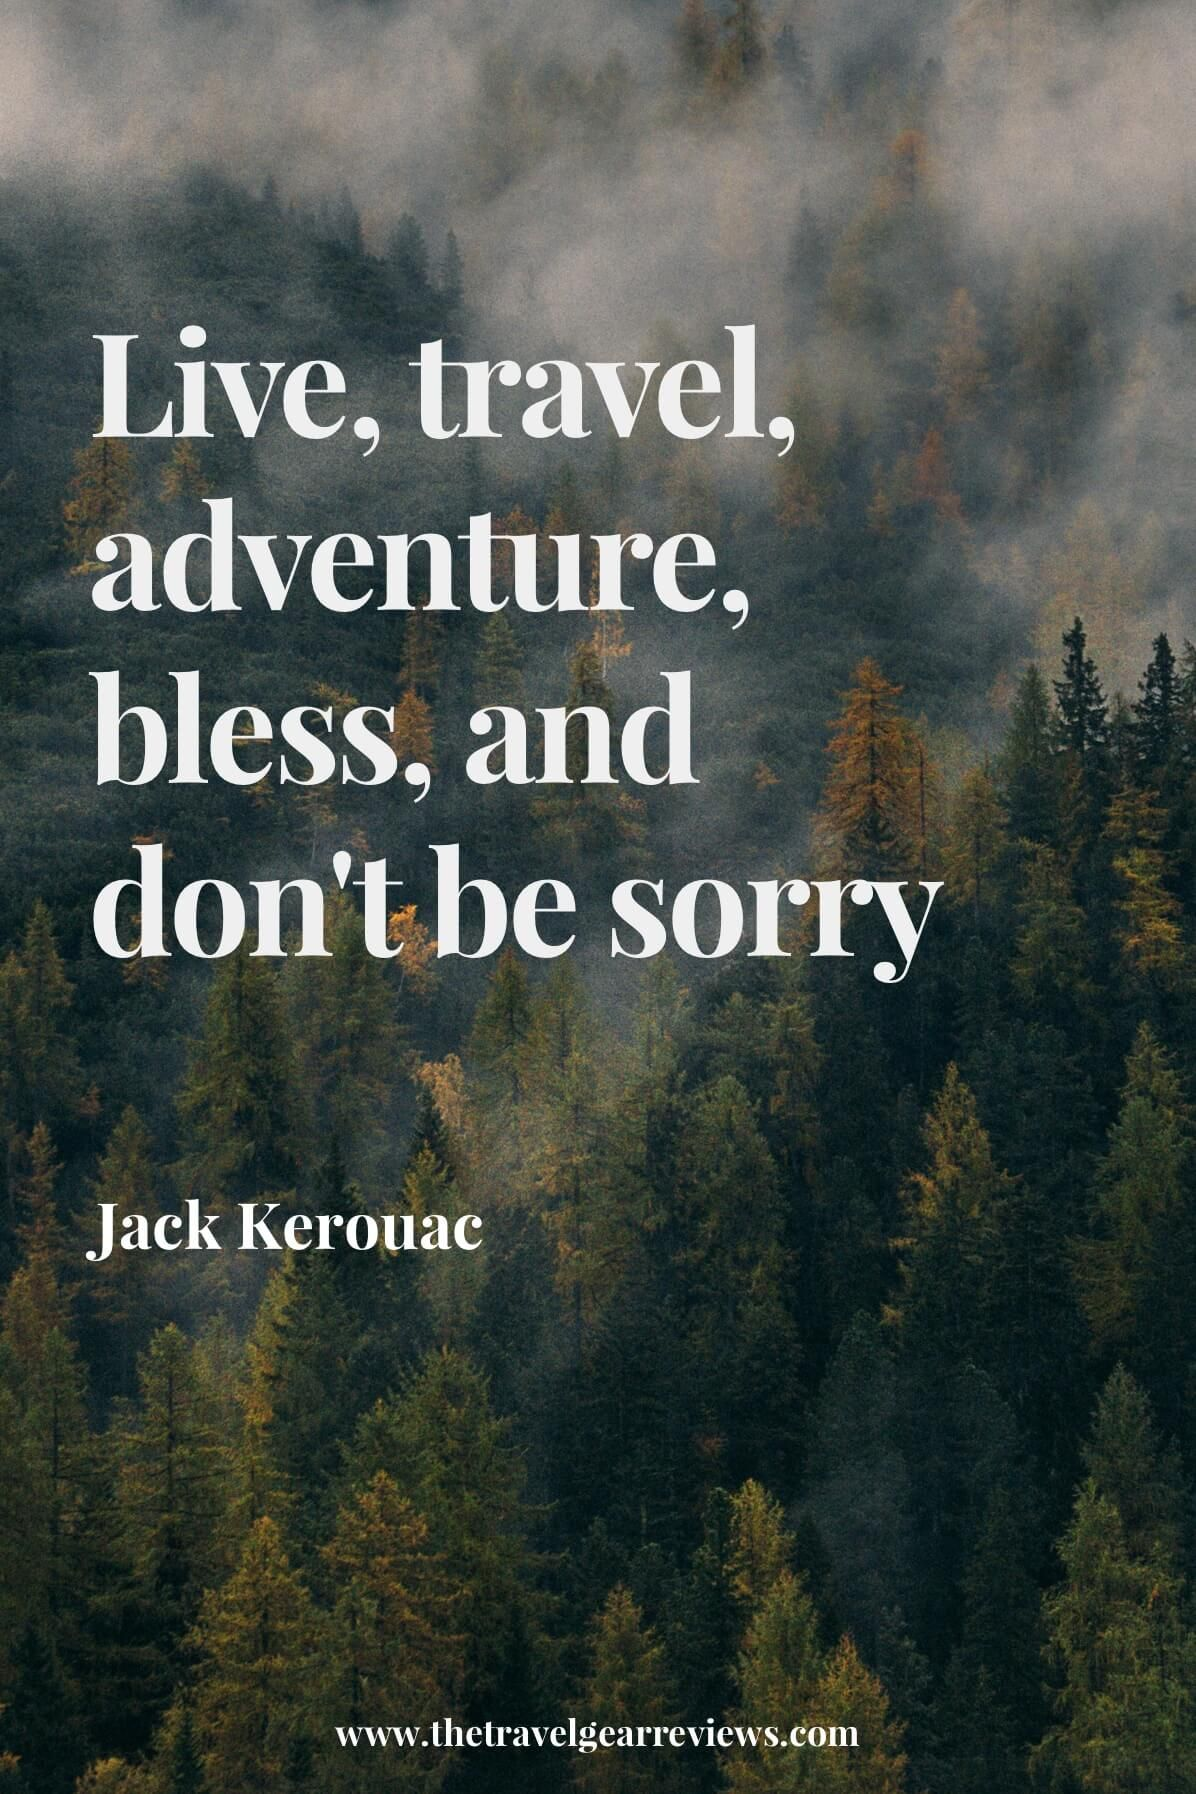 Travel Quotes 100 Best Travel Quotes And Saying  Pinterest  Jack Kerouac Wisdom